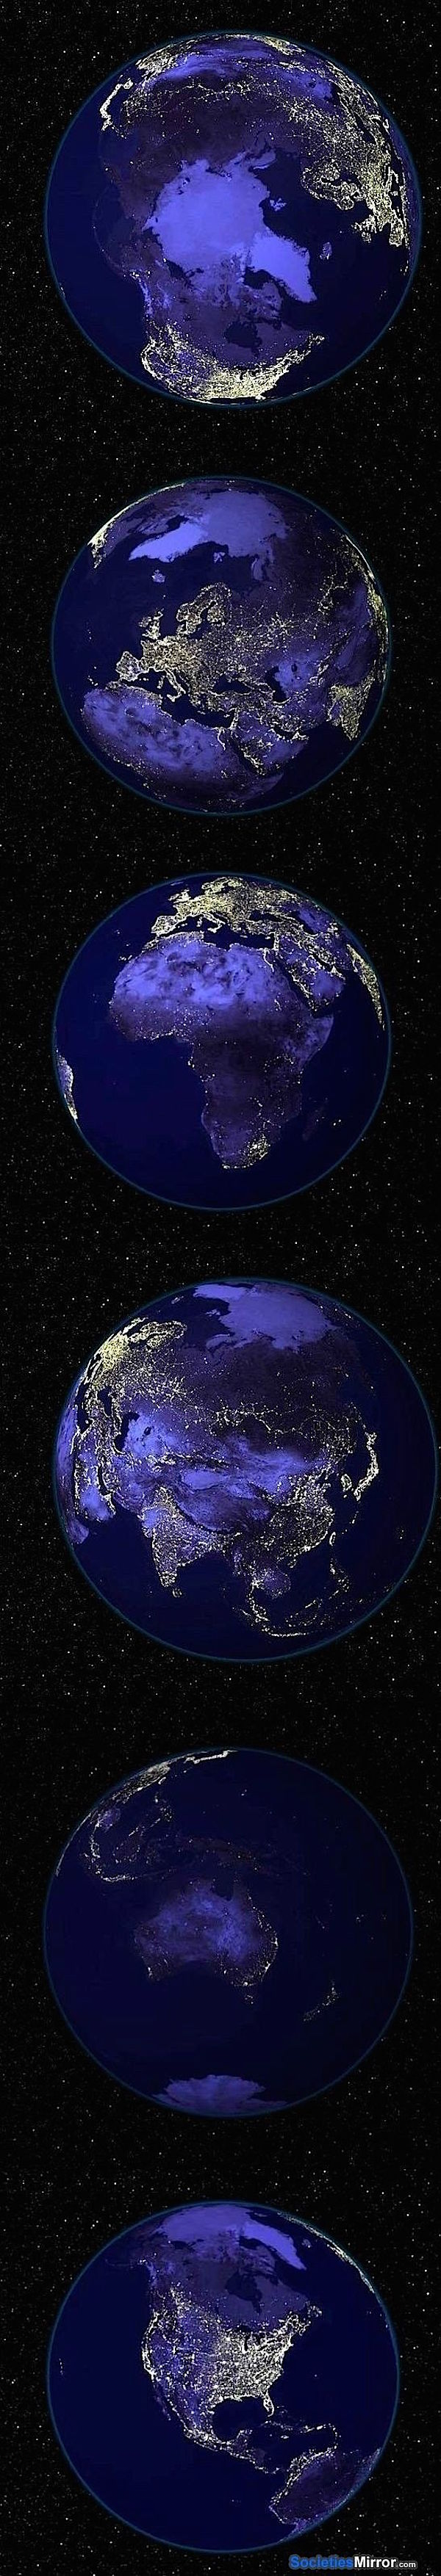 planet earth from space at night - photo #14